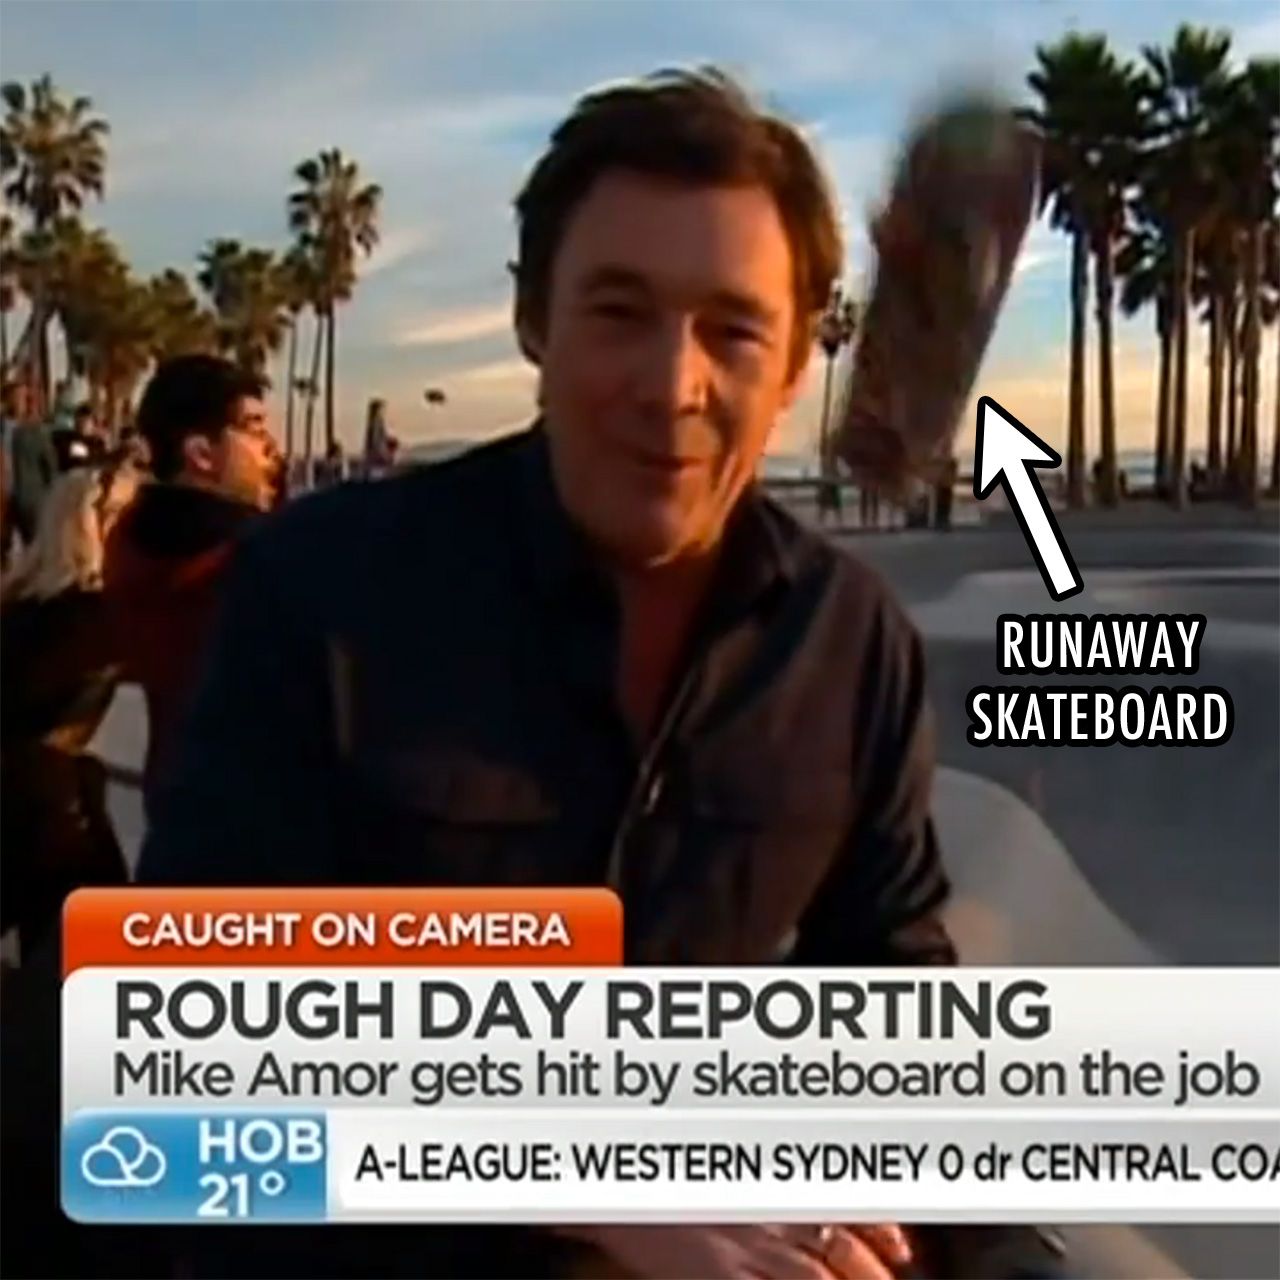 TV reporter Mike Amor struck by skateboard